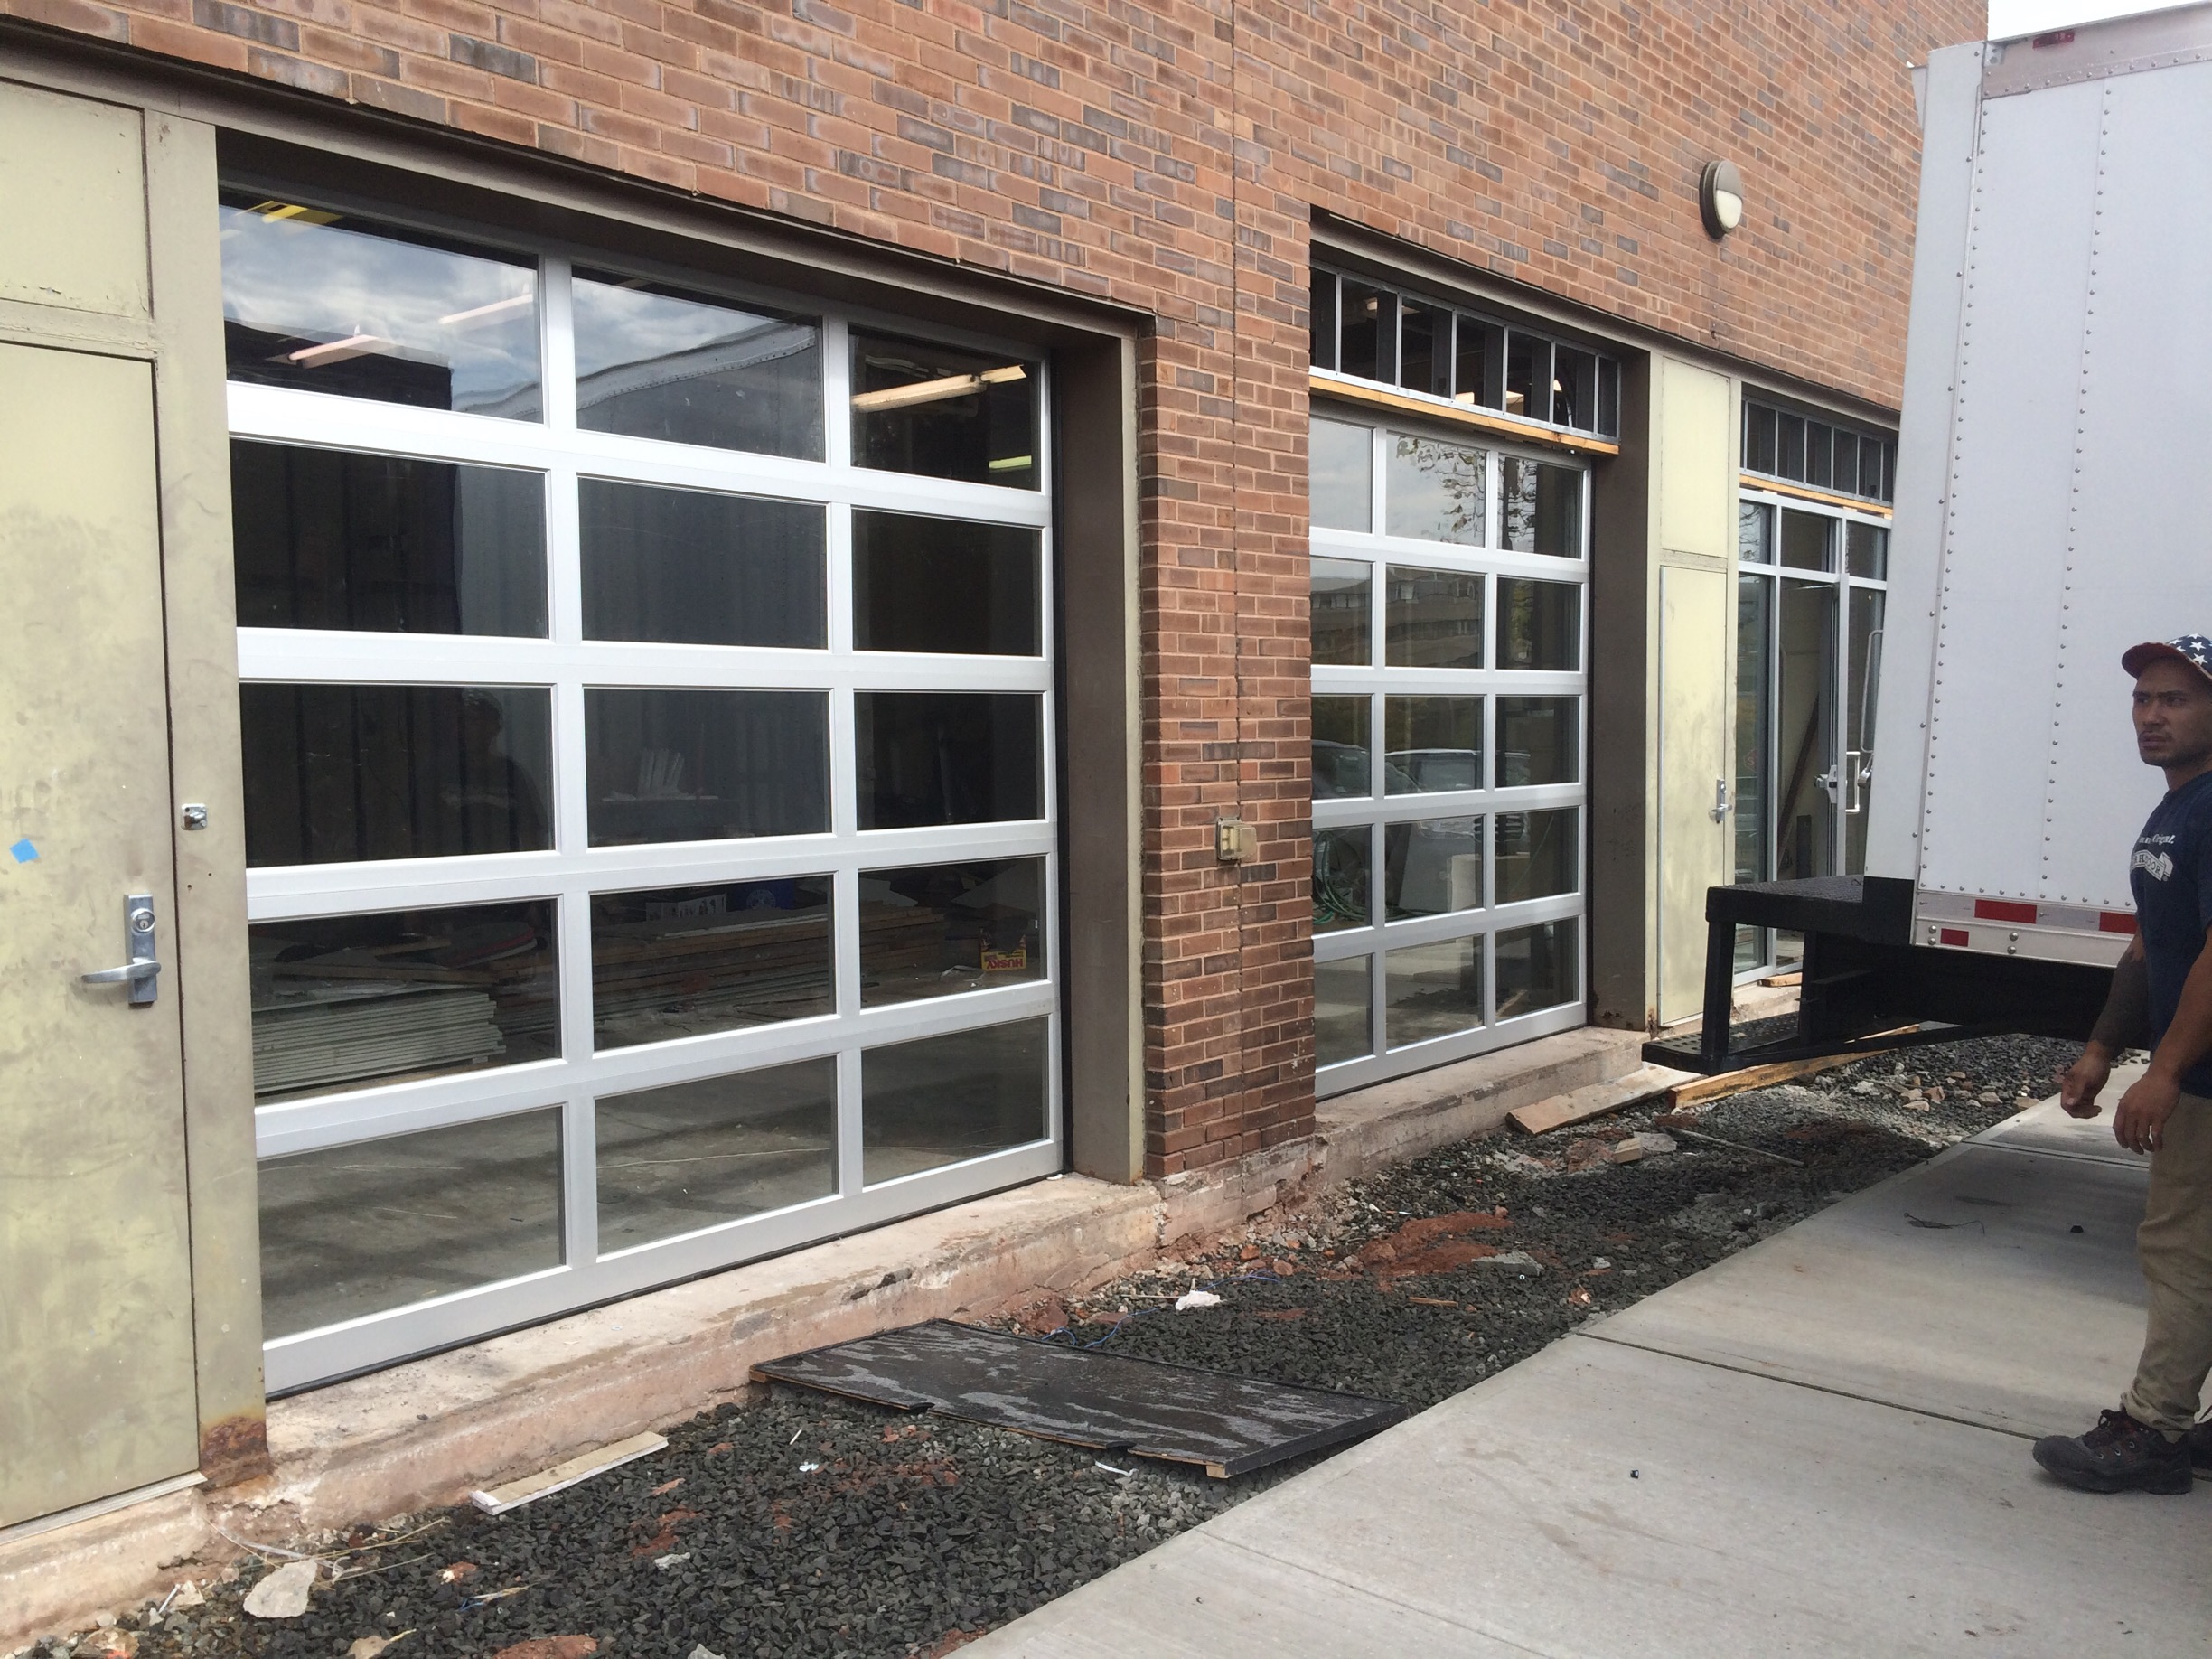 Garage Doors El Paso Texas Loading Dock Inc Overhead Door Inc Glass Garage Doors Image